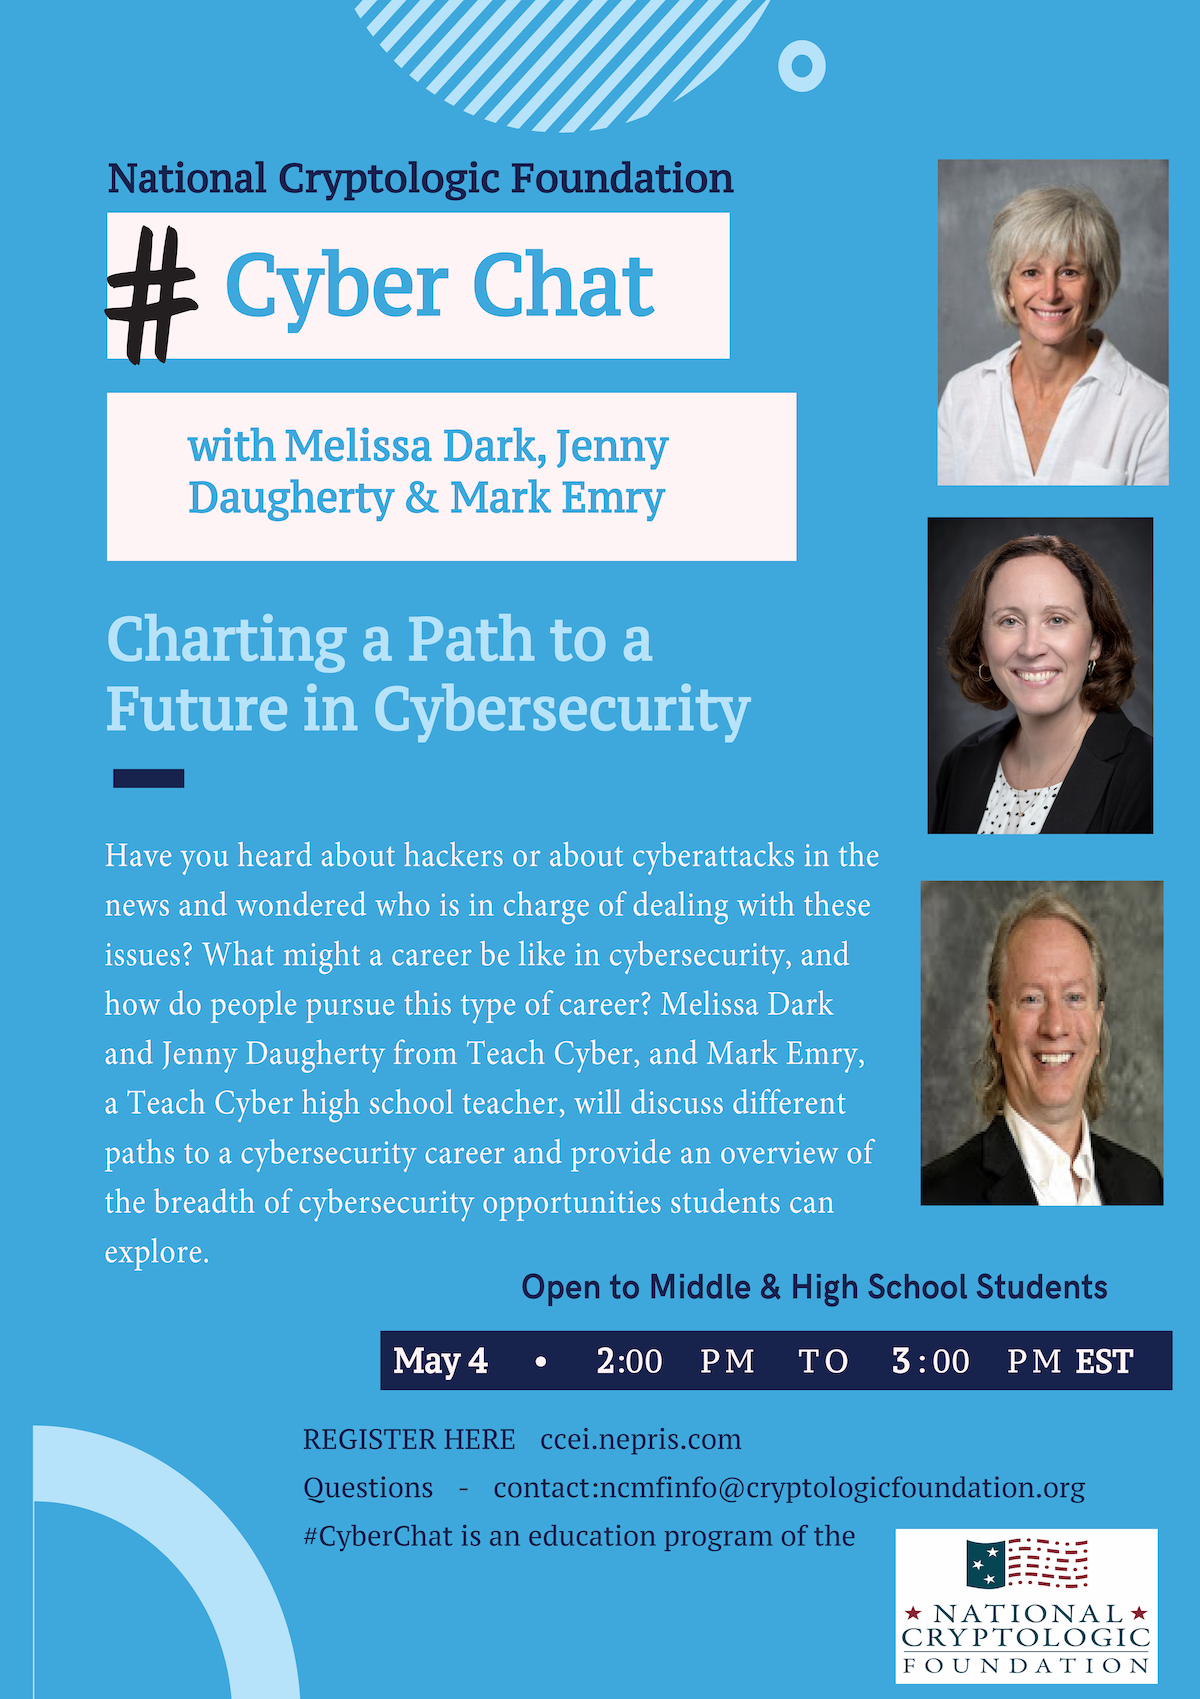 NCF #CyberChat: Charting a Path to a Future in Cybersecurity